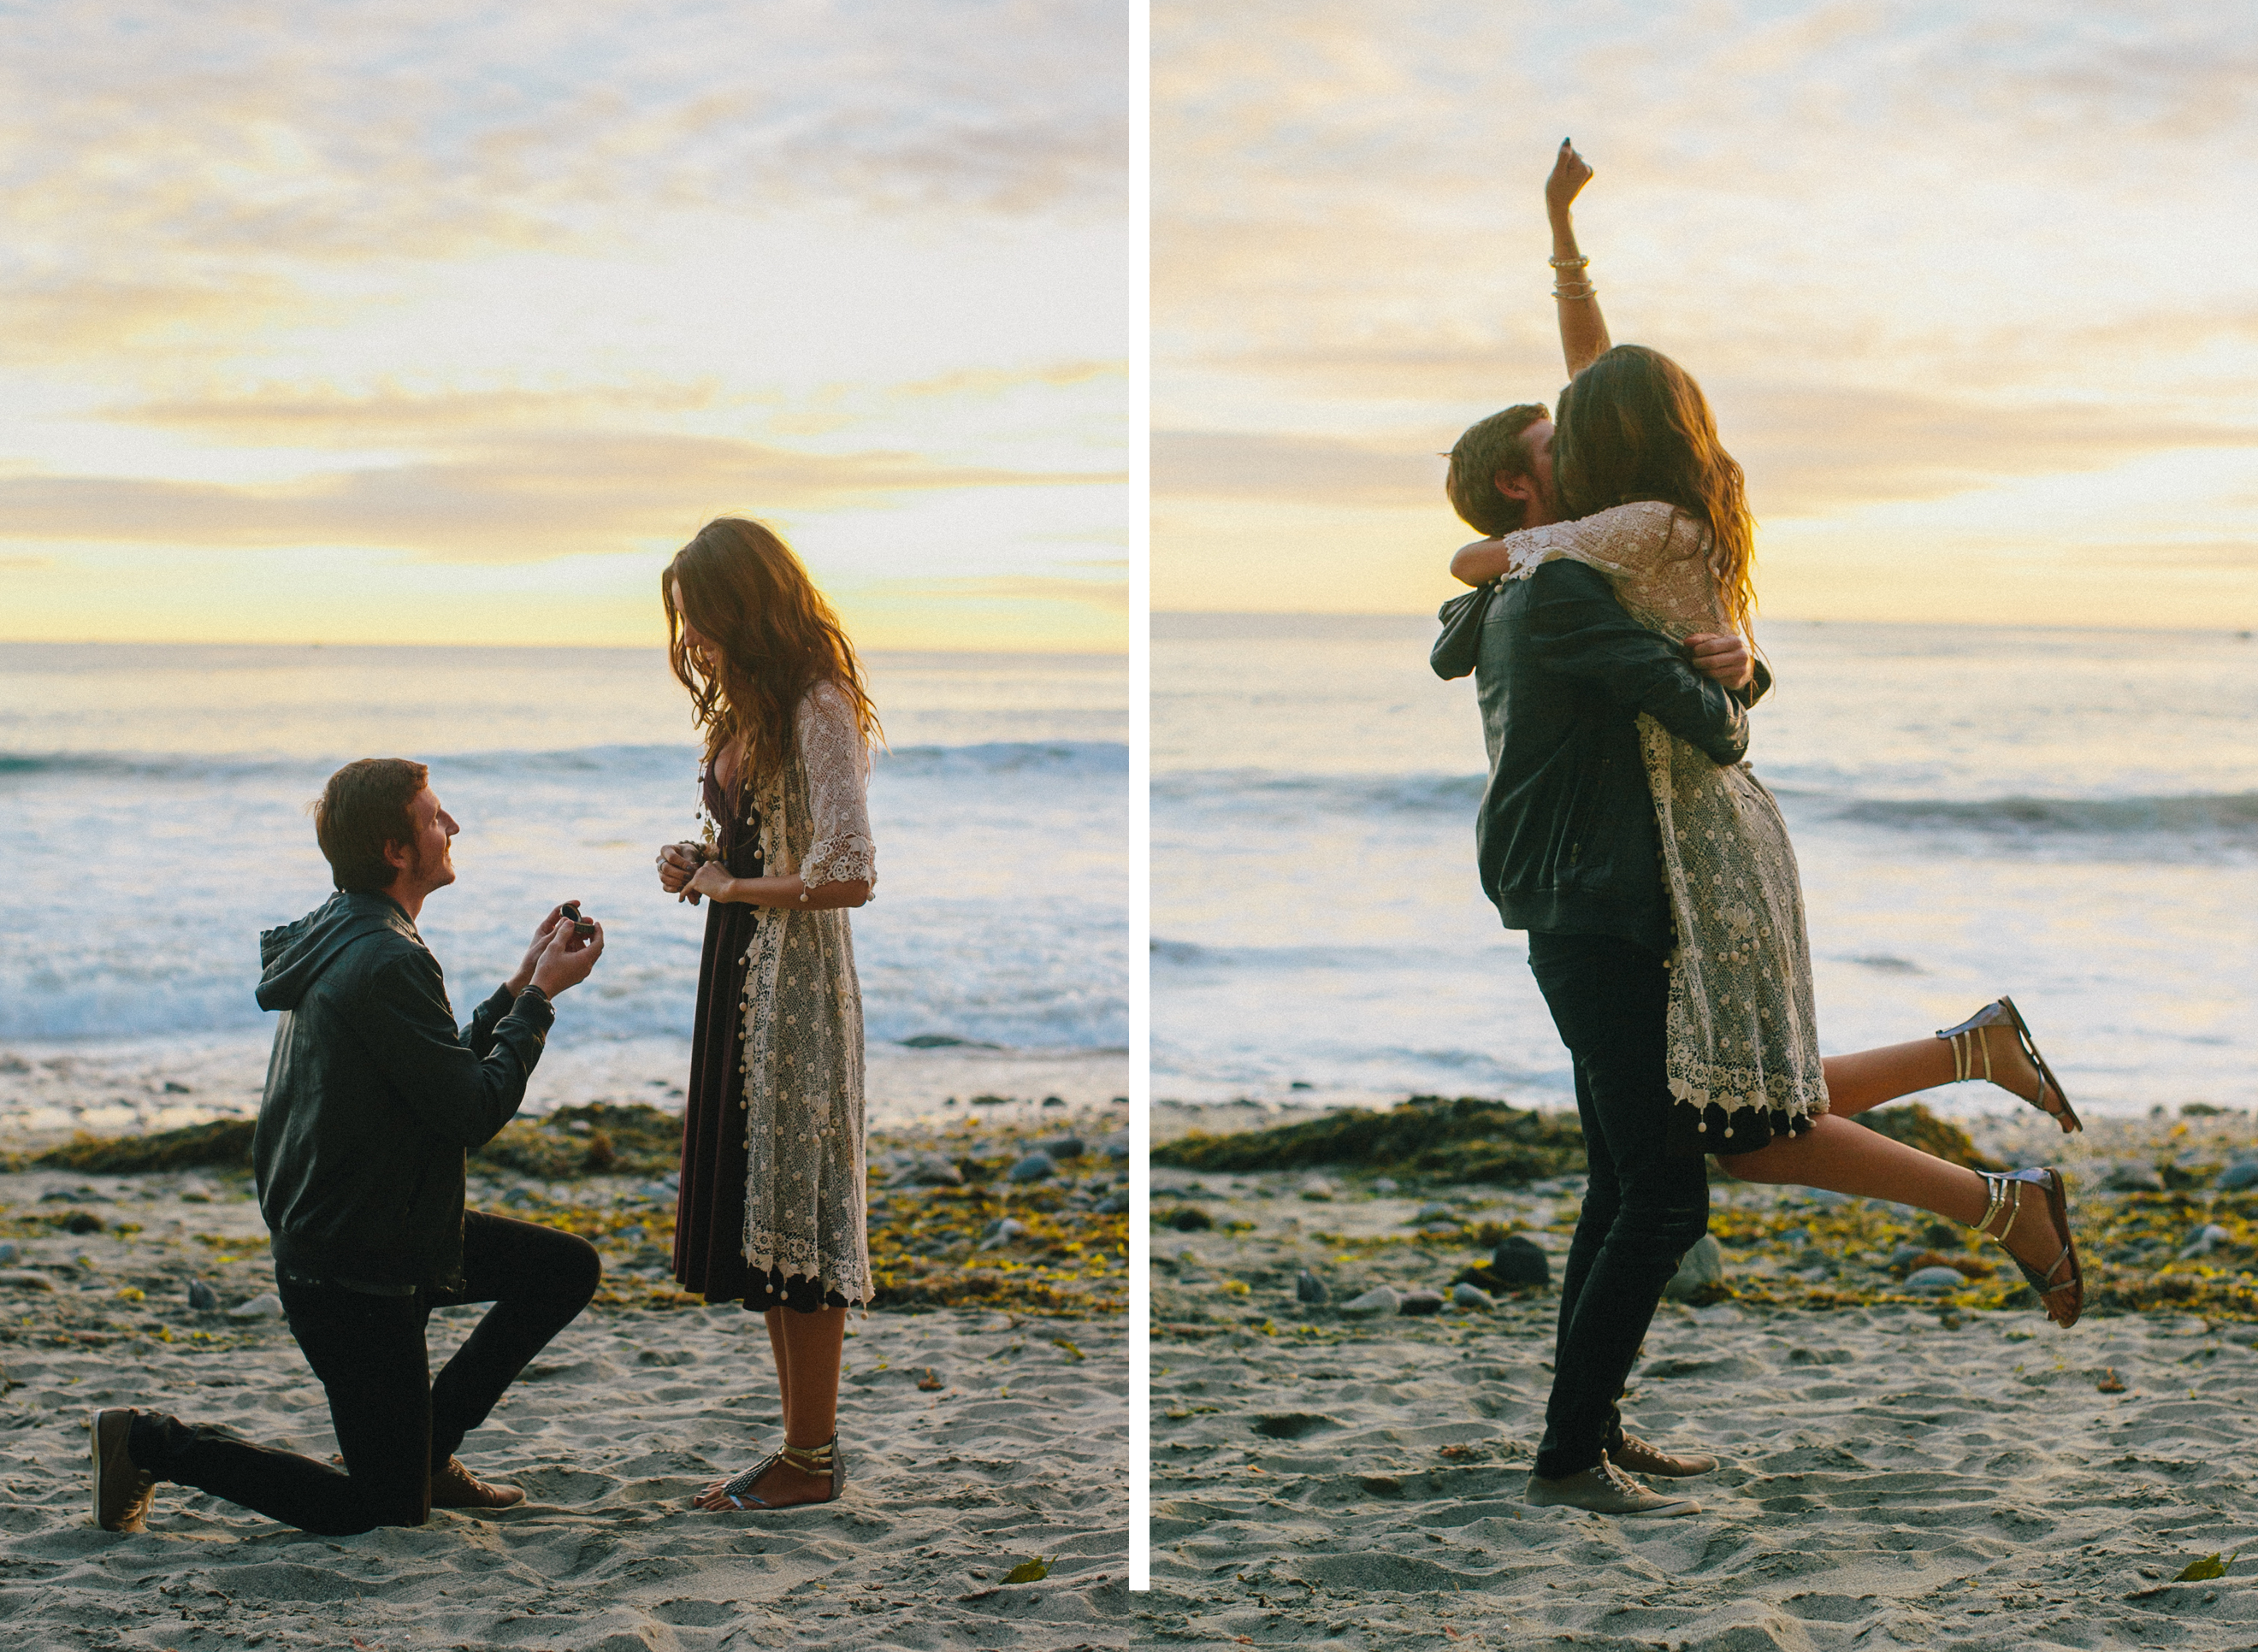 Image 1 of Ryan & Jasmin's California Coast Proposal